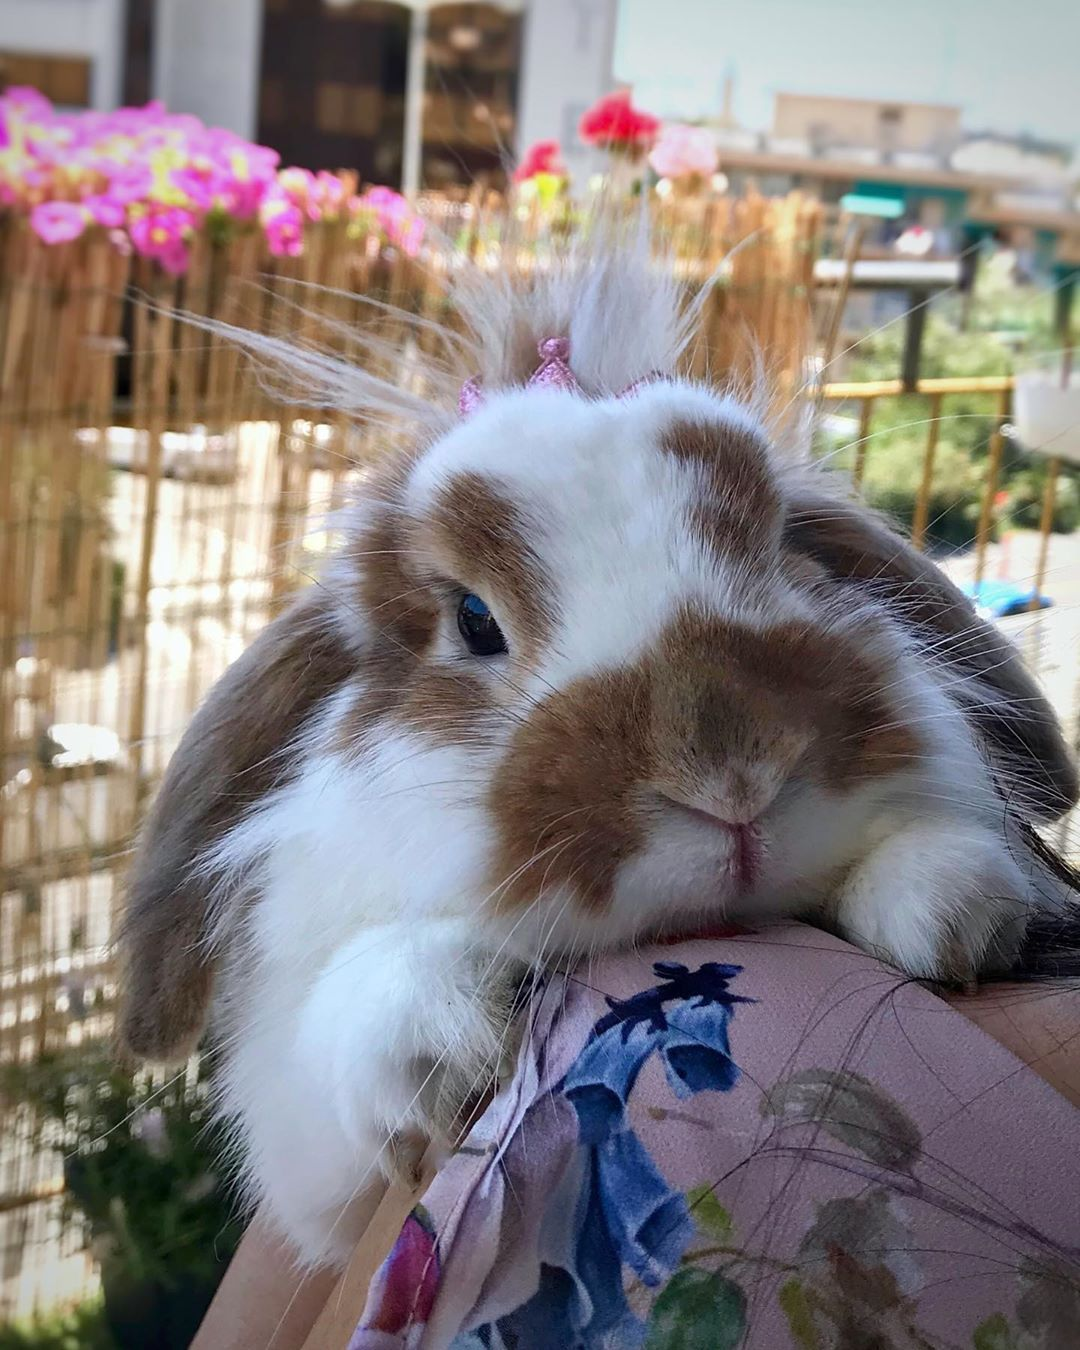 Chloe Tommy On Instagram The Most Beautiful Emotions Are The Ones That You Can Not Explain K In 2020 Cute Bunny Pictures Cute Baby Bunnies Cute Baby Animals